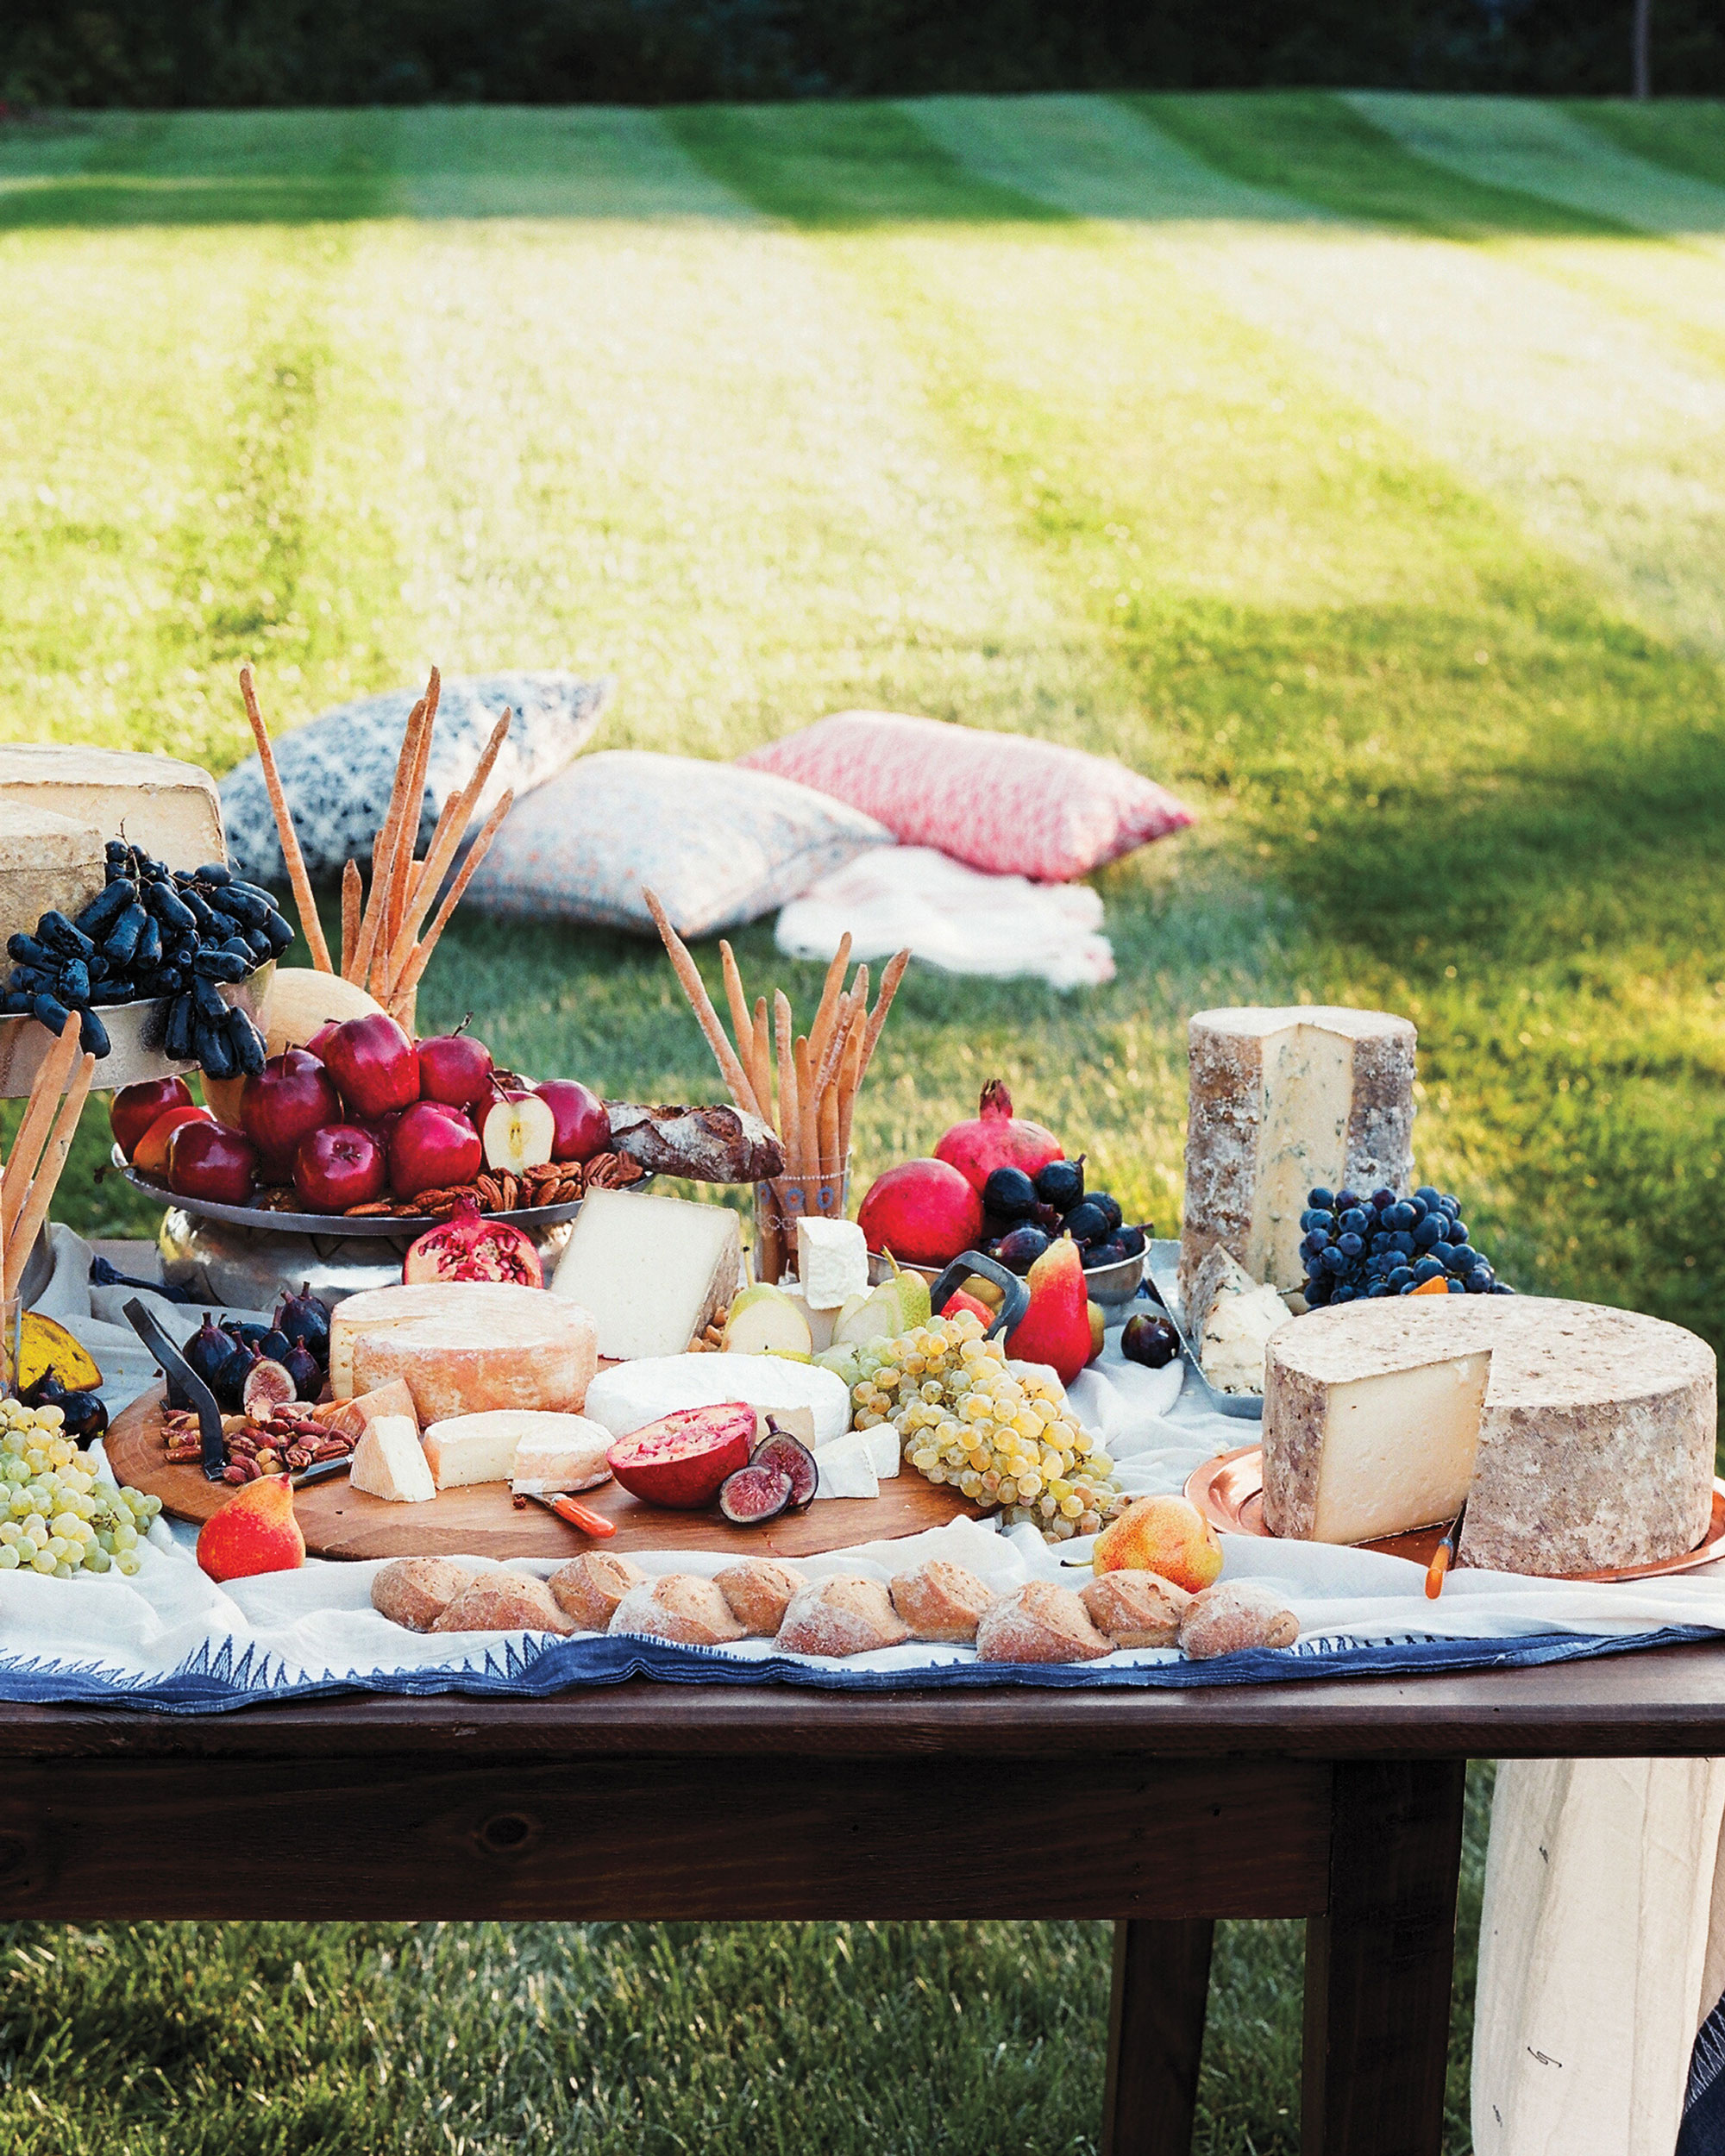 mfiona-peter-wedding-vermont-cheese-platter-with-fruit-9637.13.2015.47-d112512.jpg